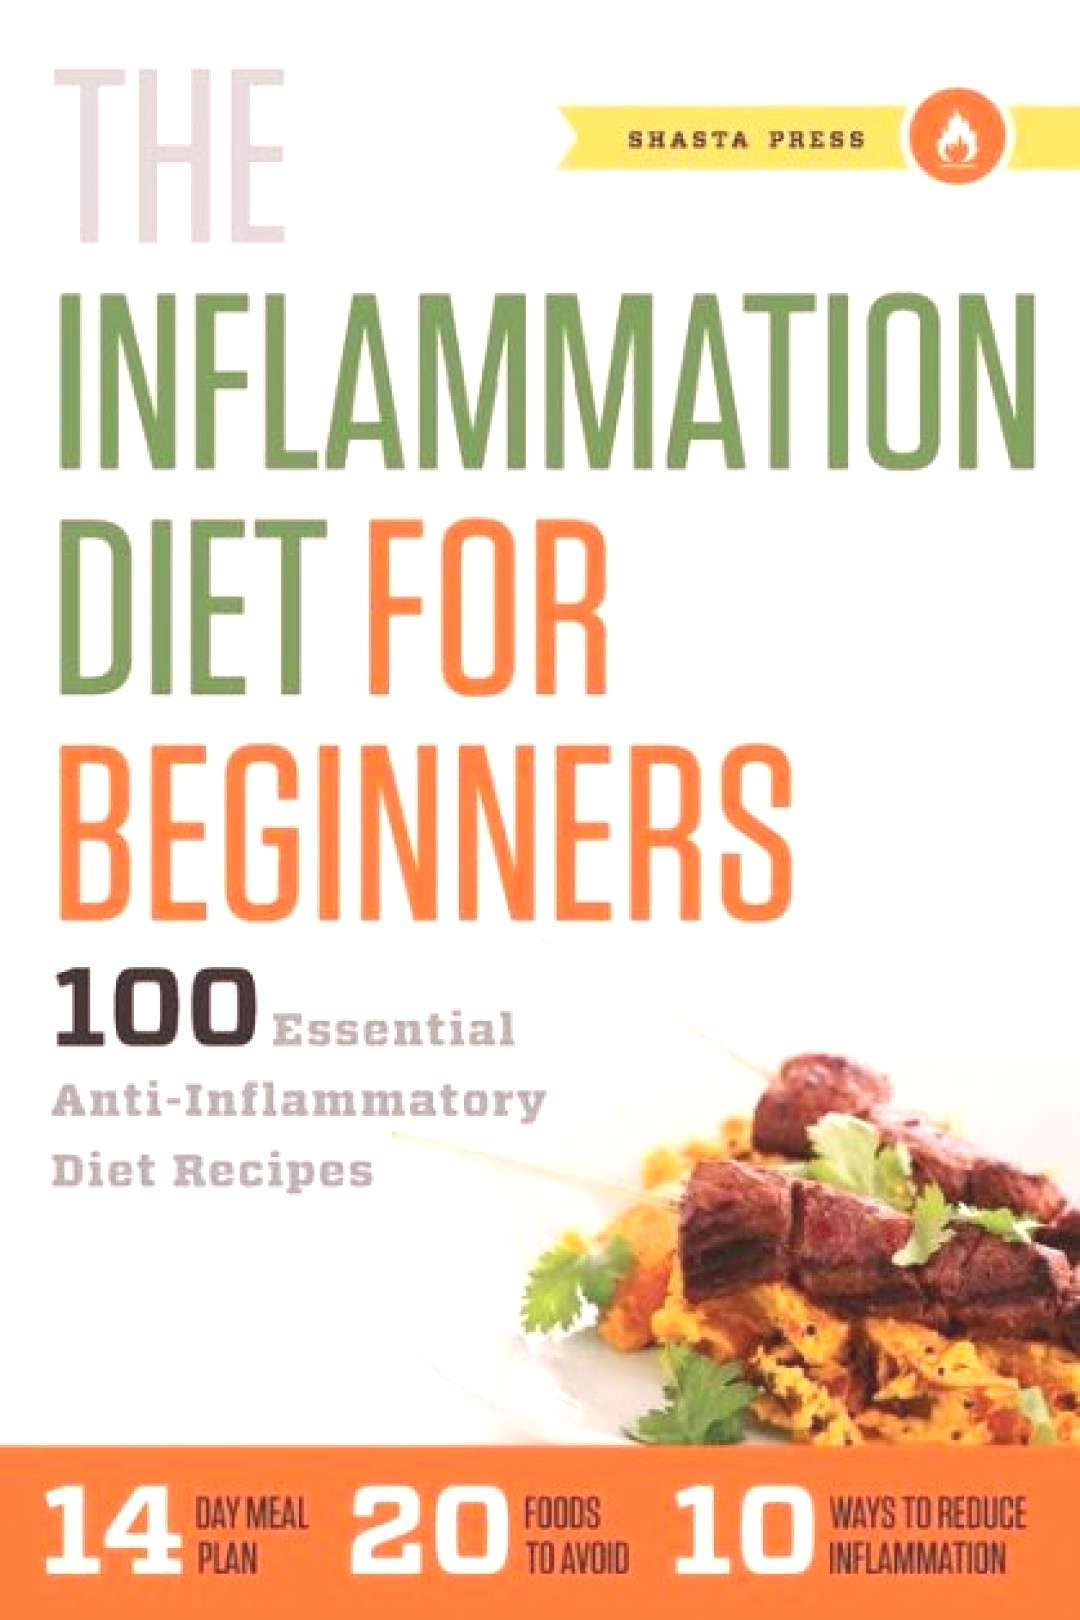 The Inflammation Diet for Beginners 100 Essential Anti-Inflammatory Diet Recipes|Paperback - Infl